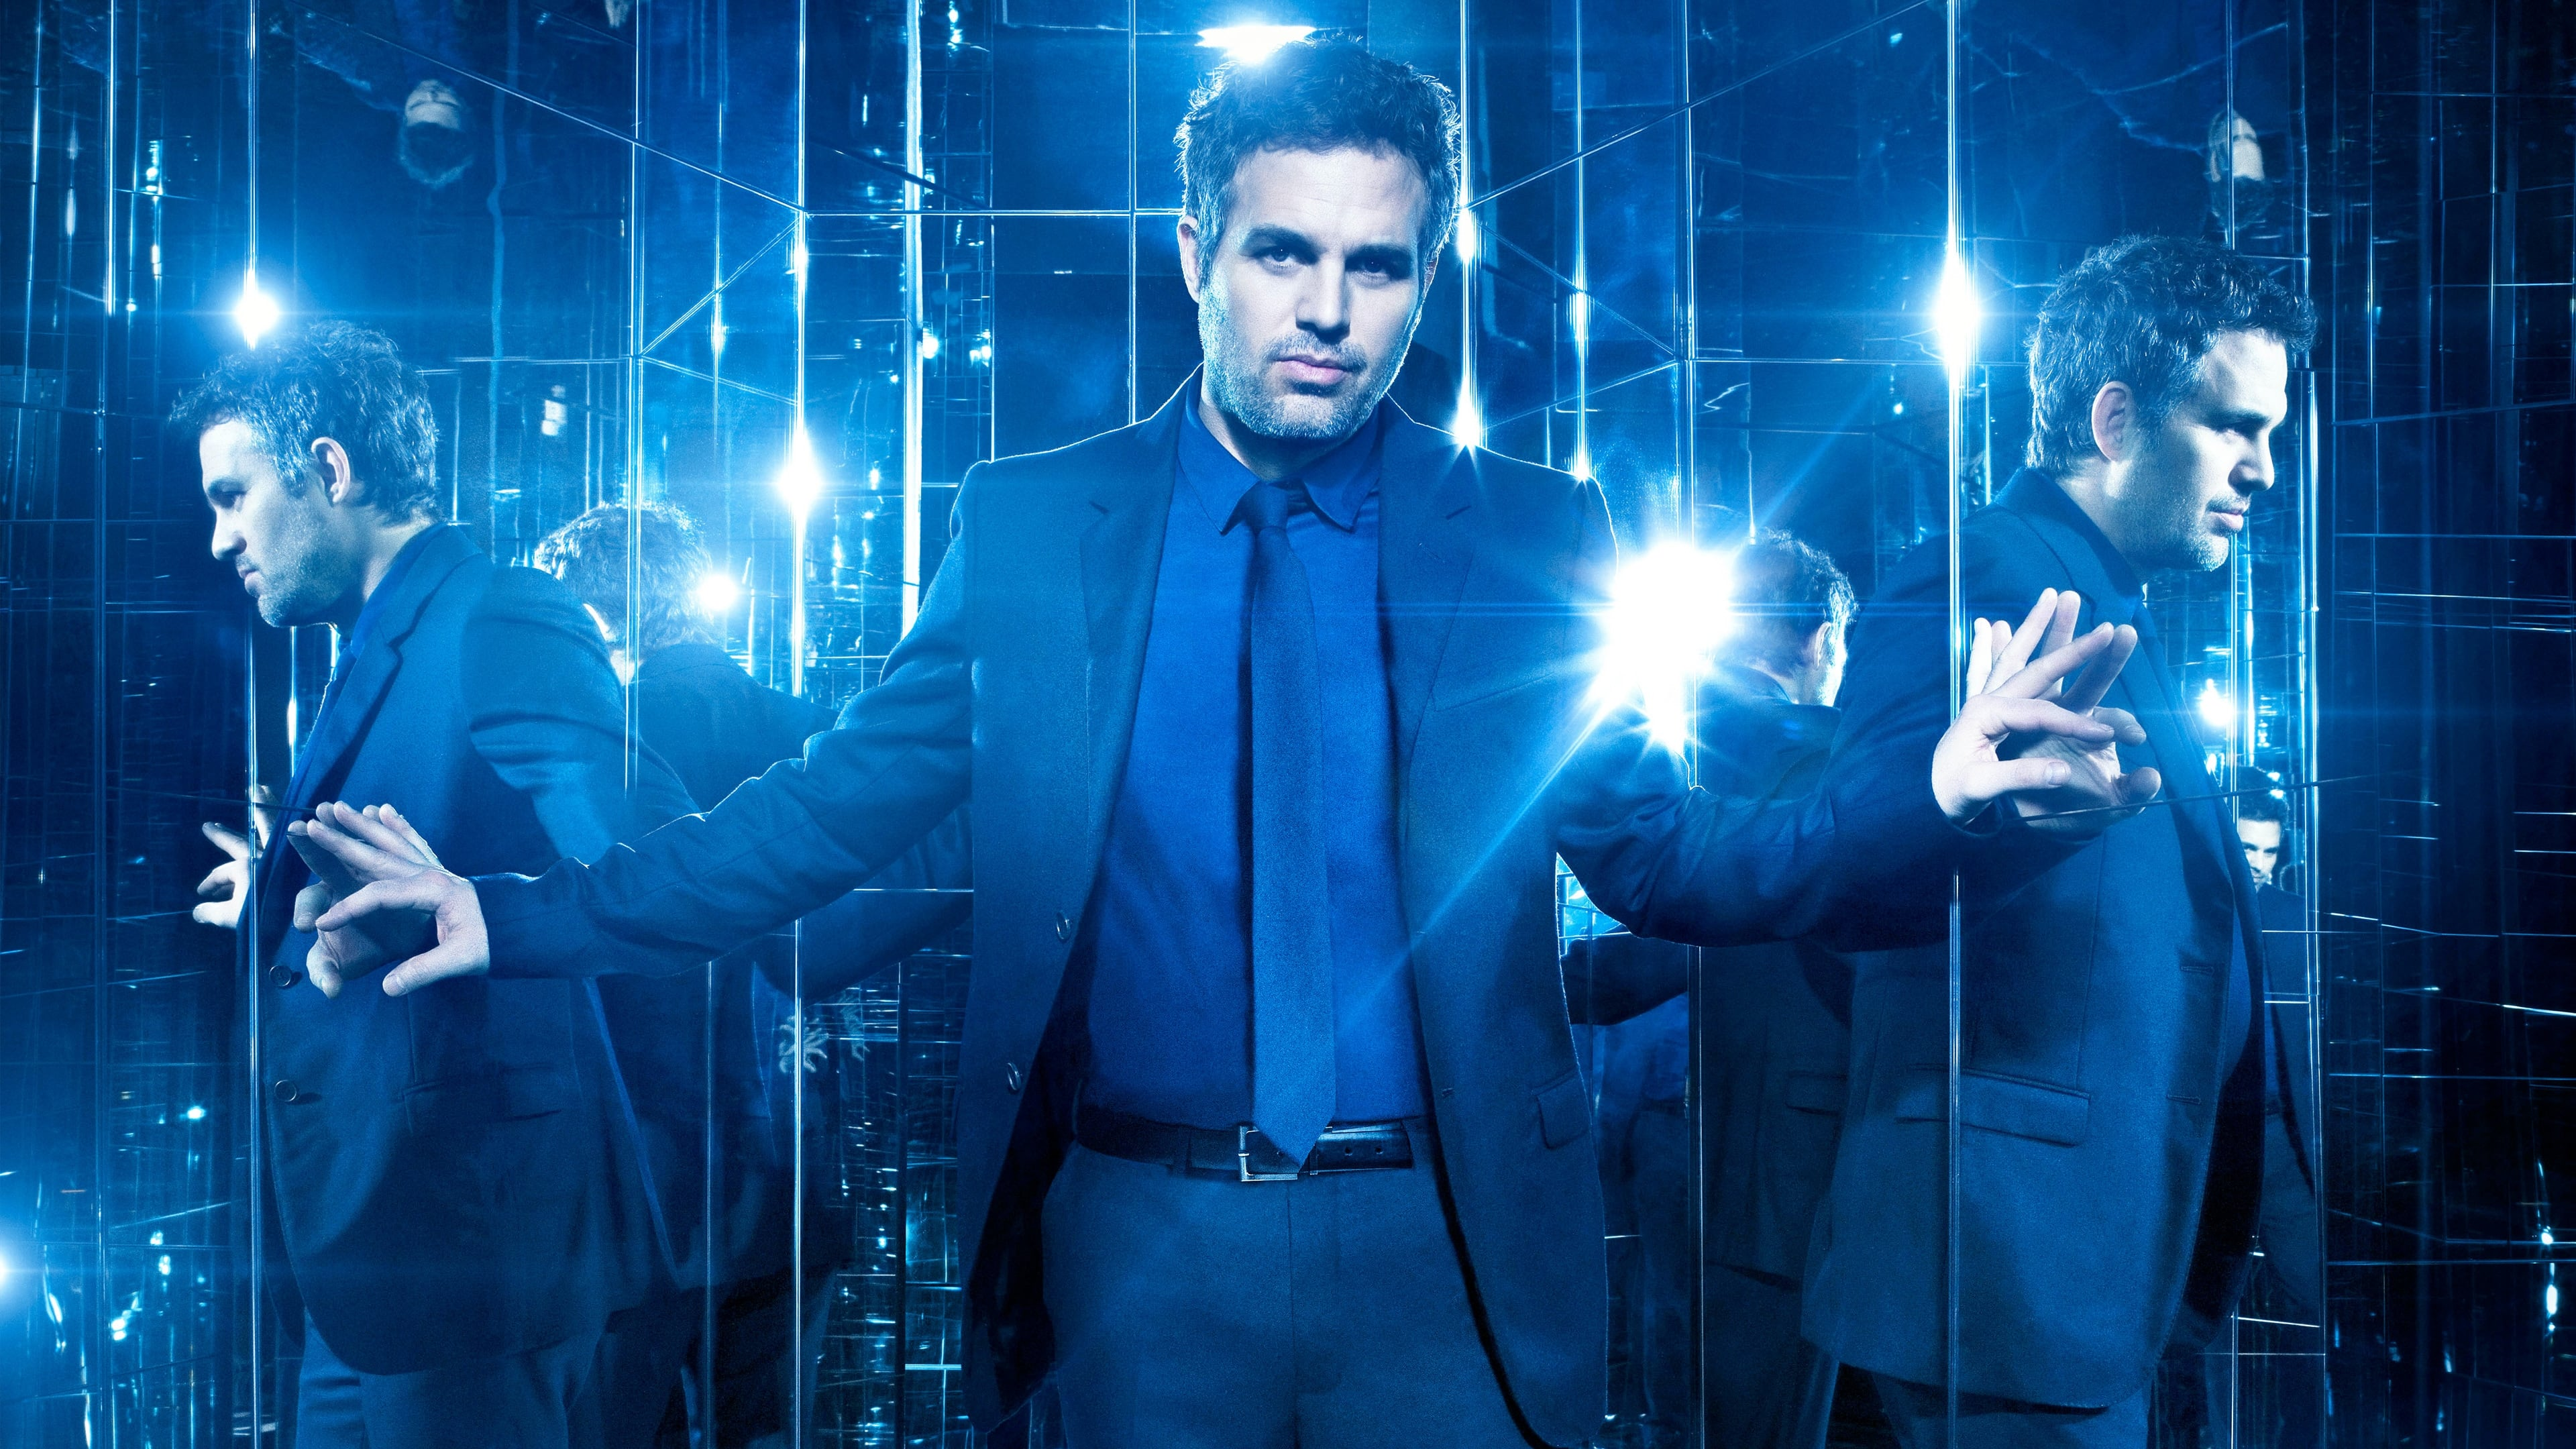 now you see me 2 full movie free online